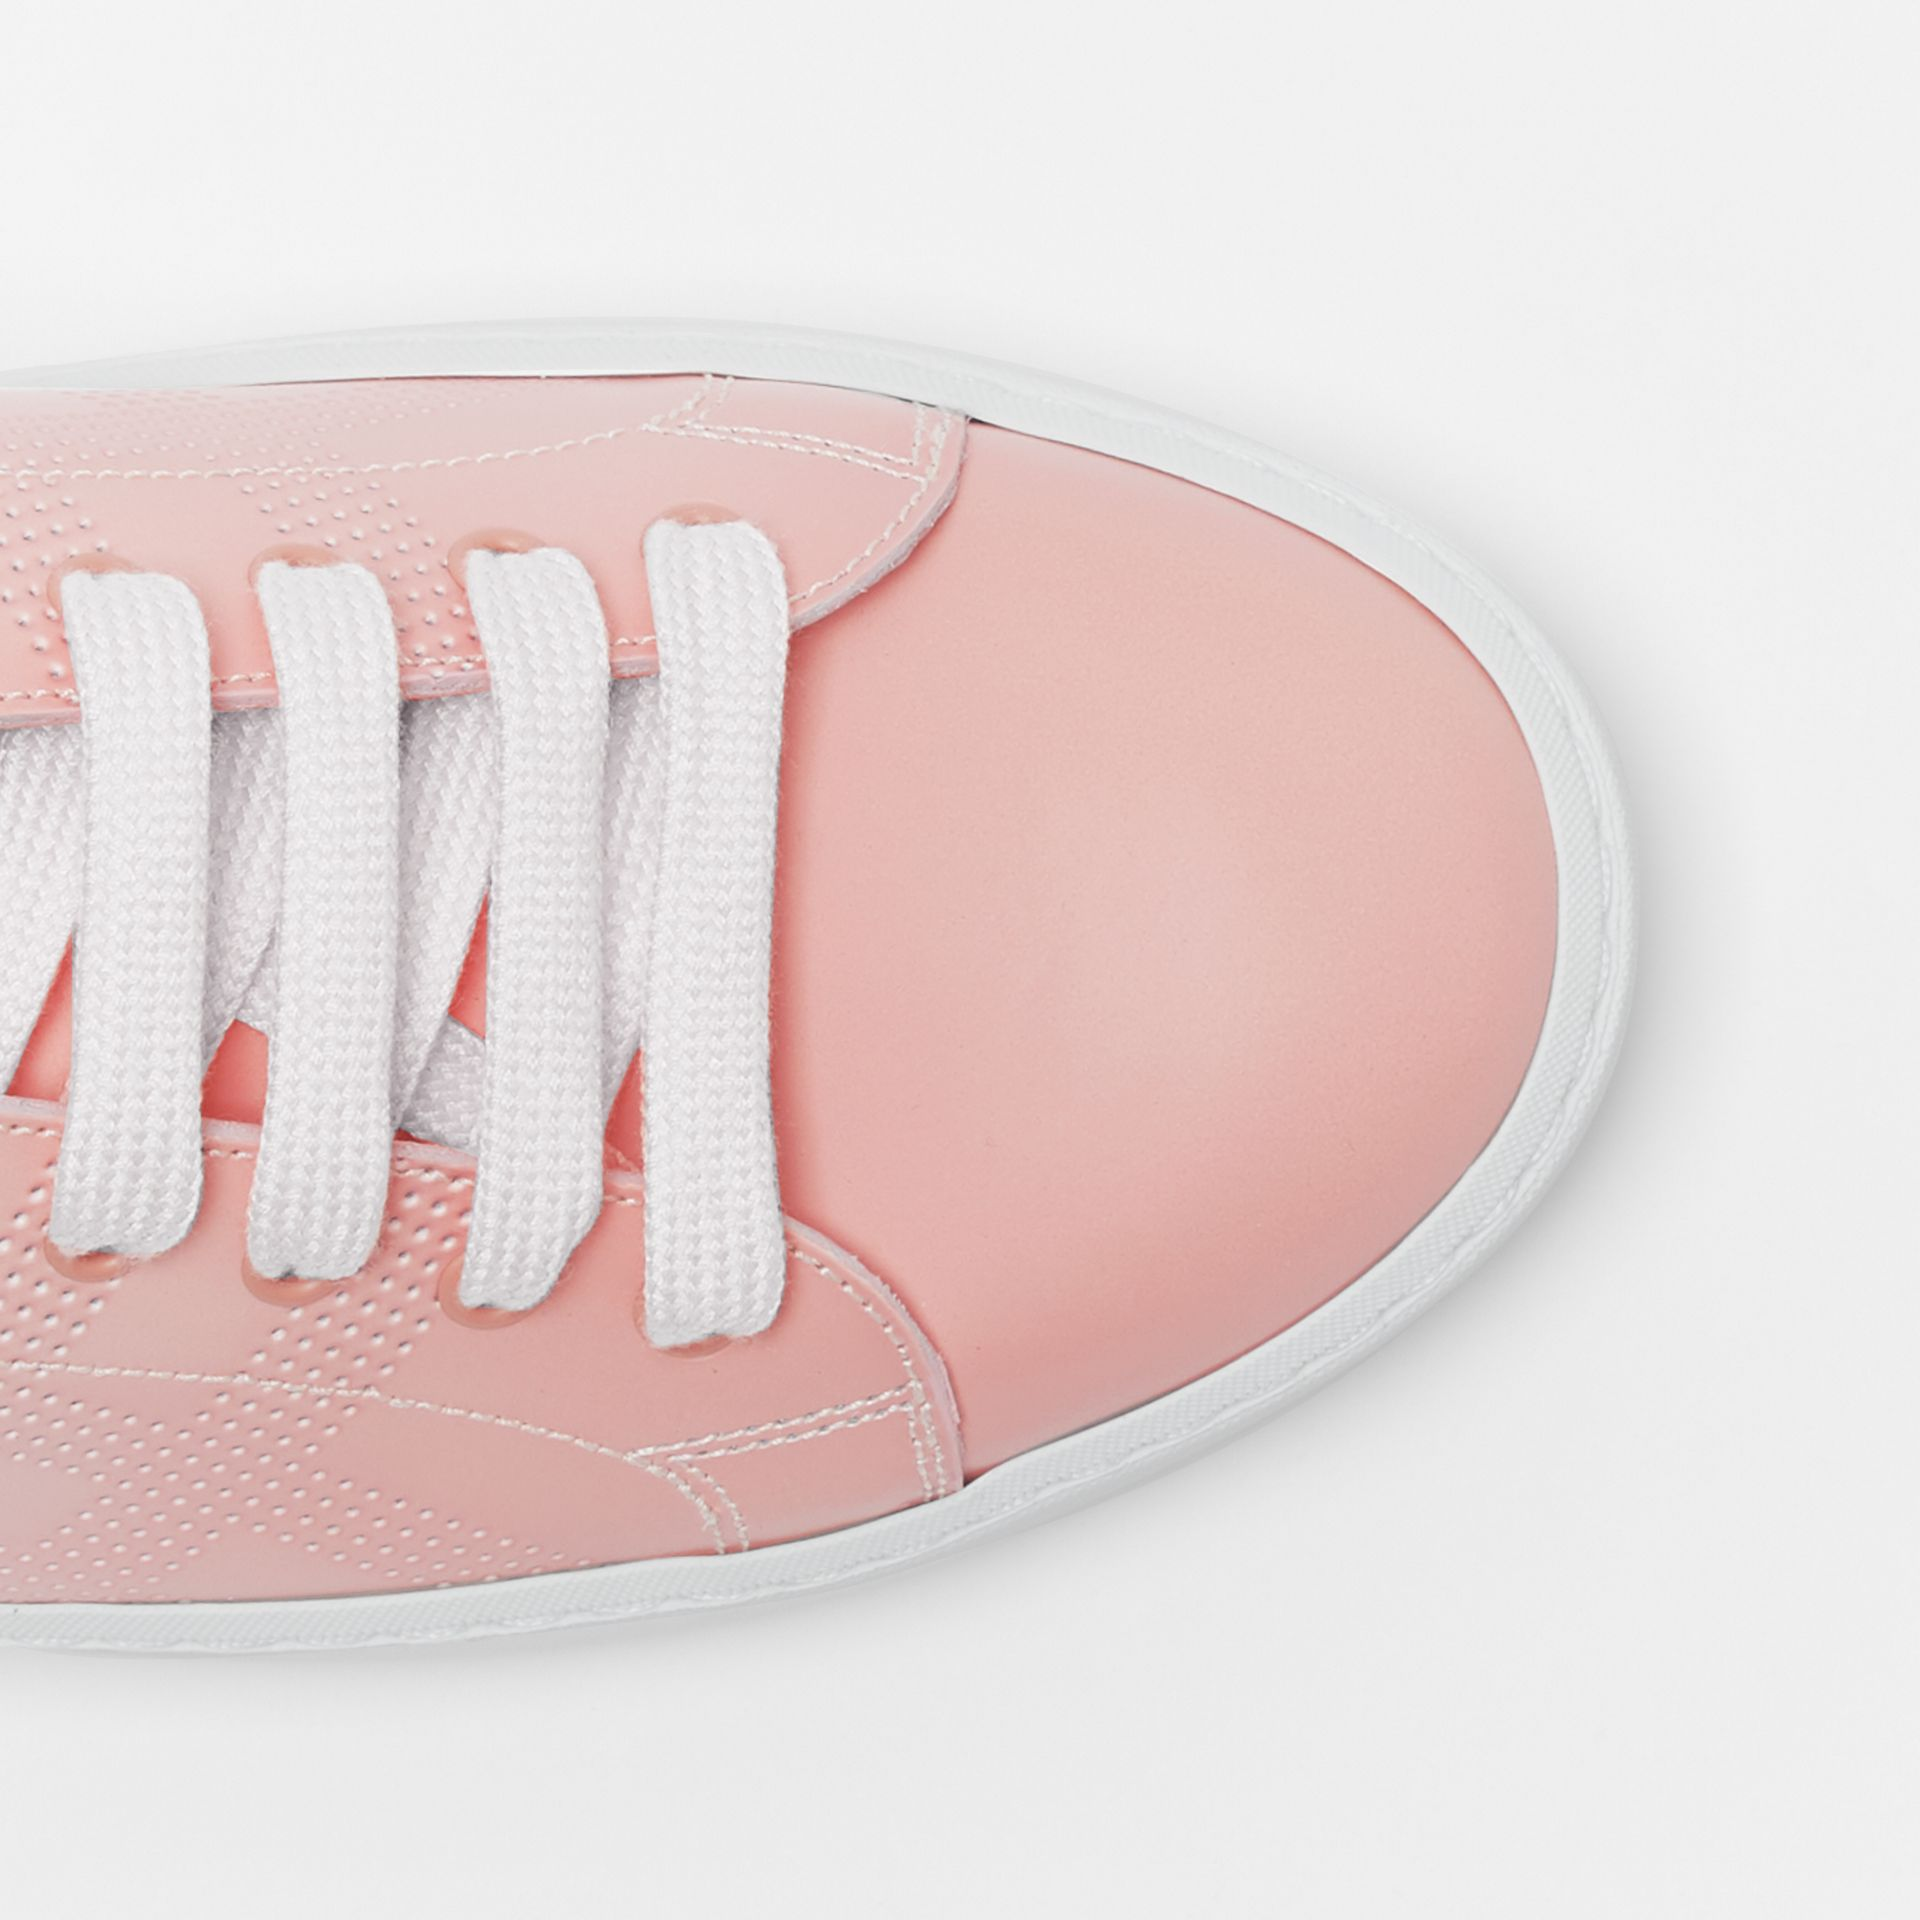 Sneakers en cuir avec dégradé et motif check perforé (Rose Sucré) - Femme | Burberry - photo de la galerie 2